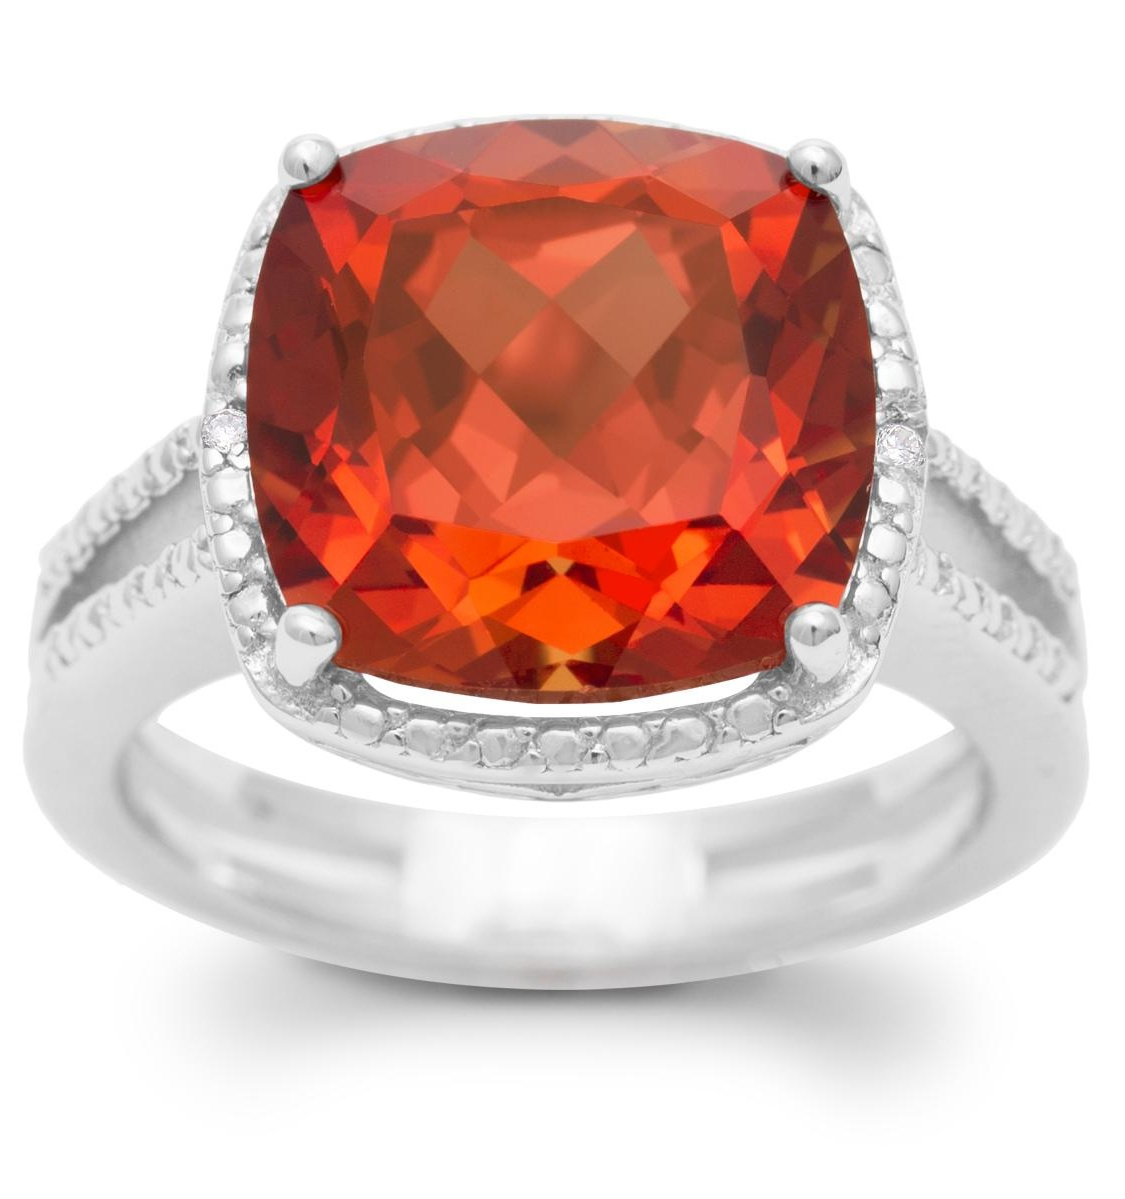 5 1/3 Carat Split Shank Cushion Cut Created Padparadscha Sapphire and Diamond Ring In Sterling Silver - 5.5